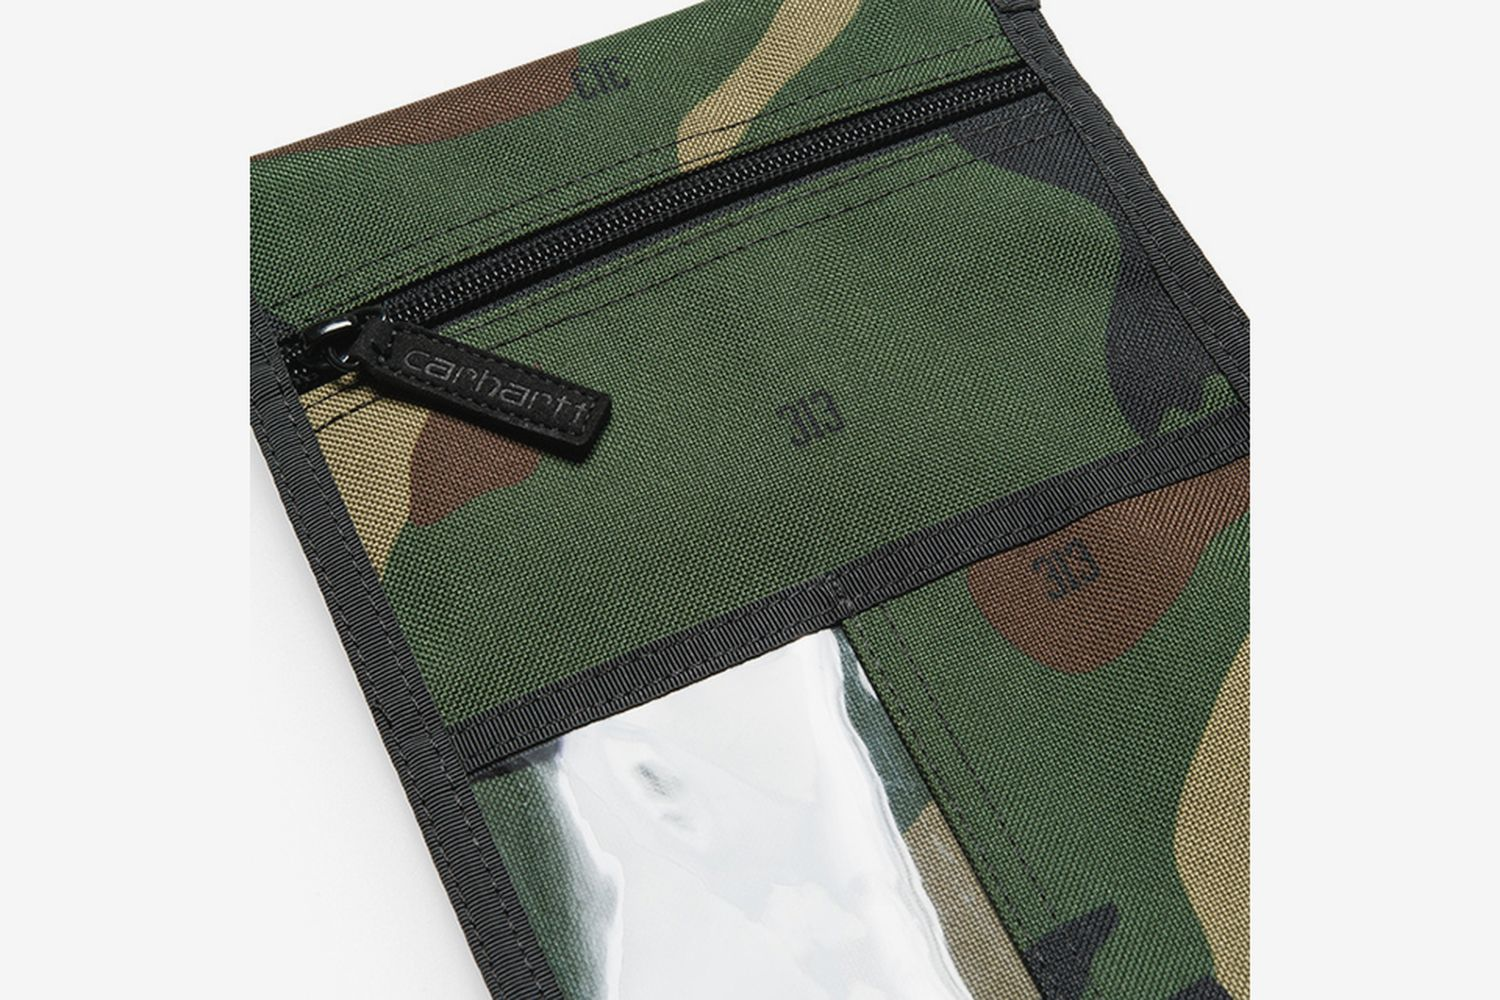 Collins Neck Pouch